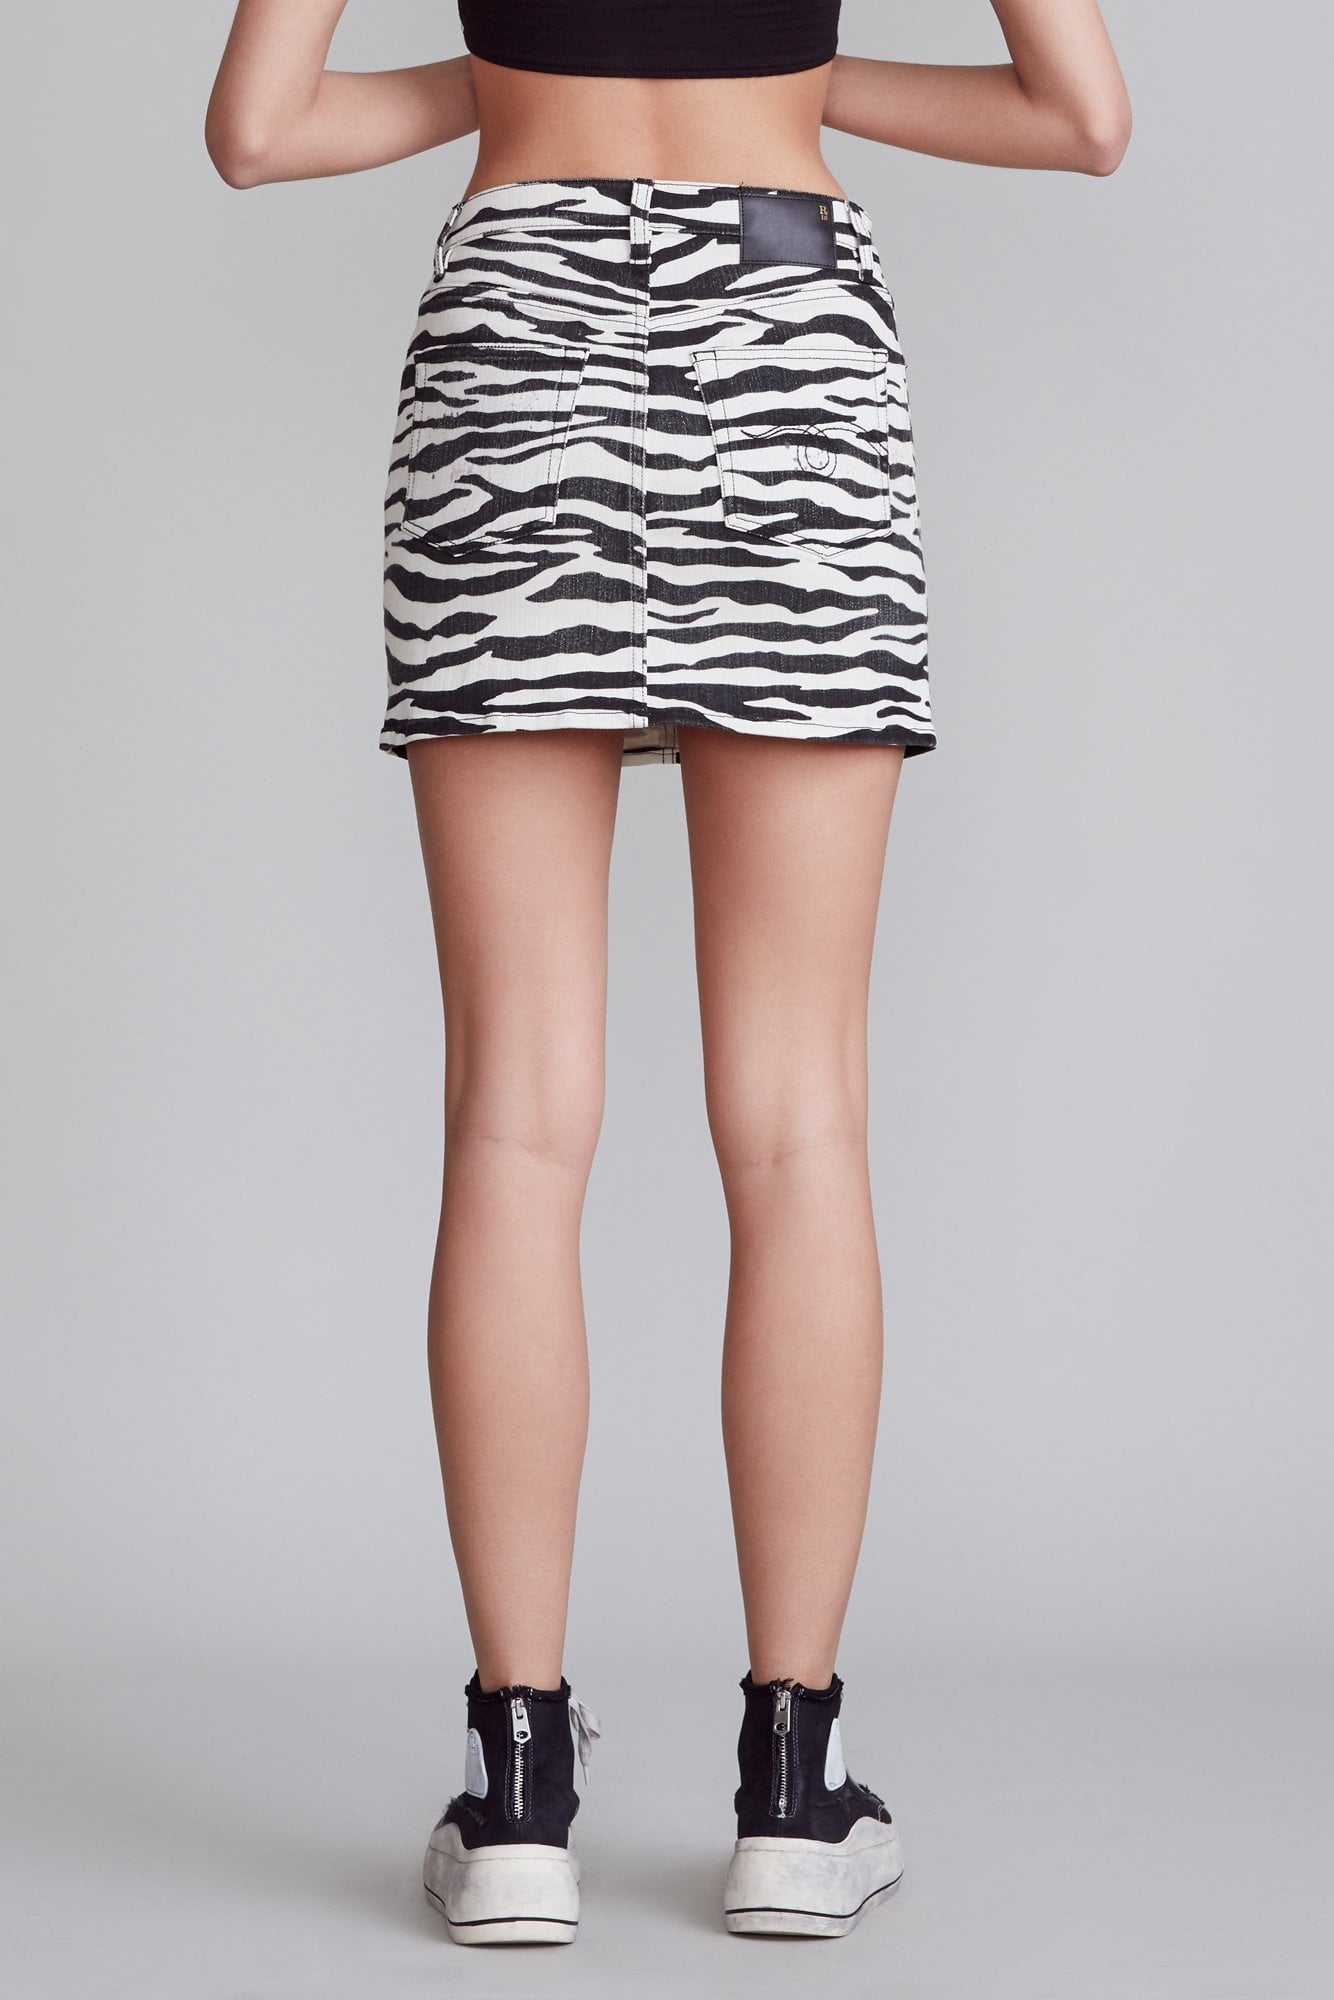 High Rise Mini Skirt - Zebra Print